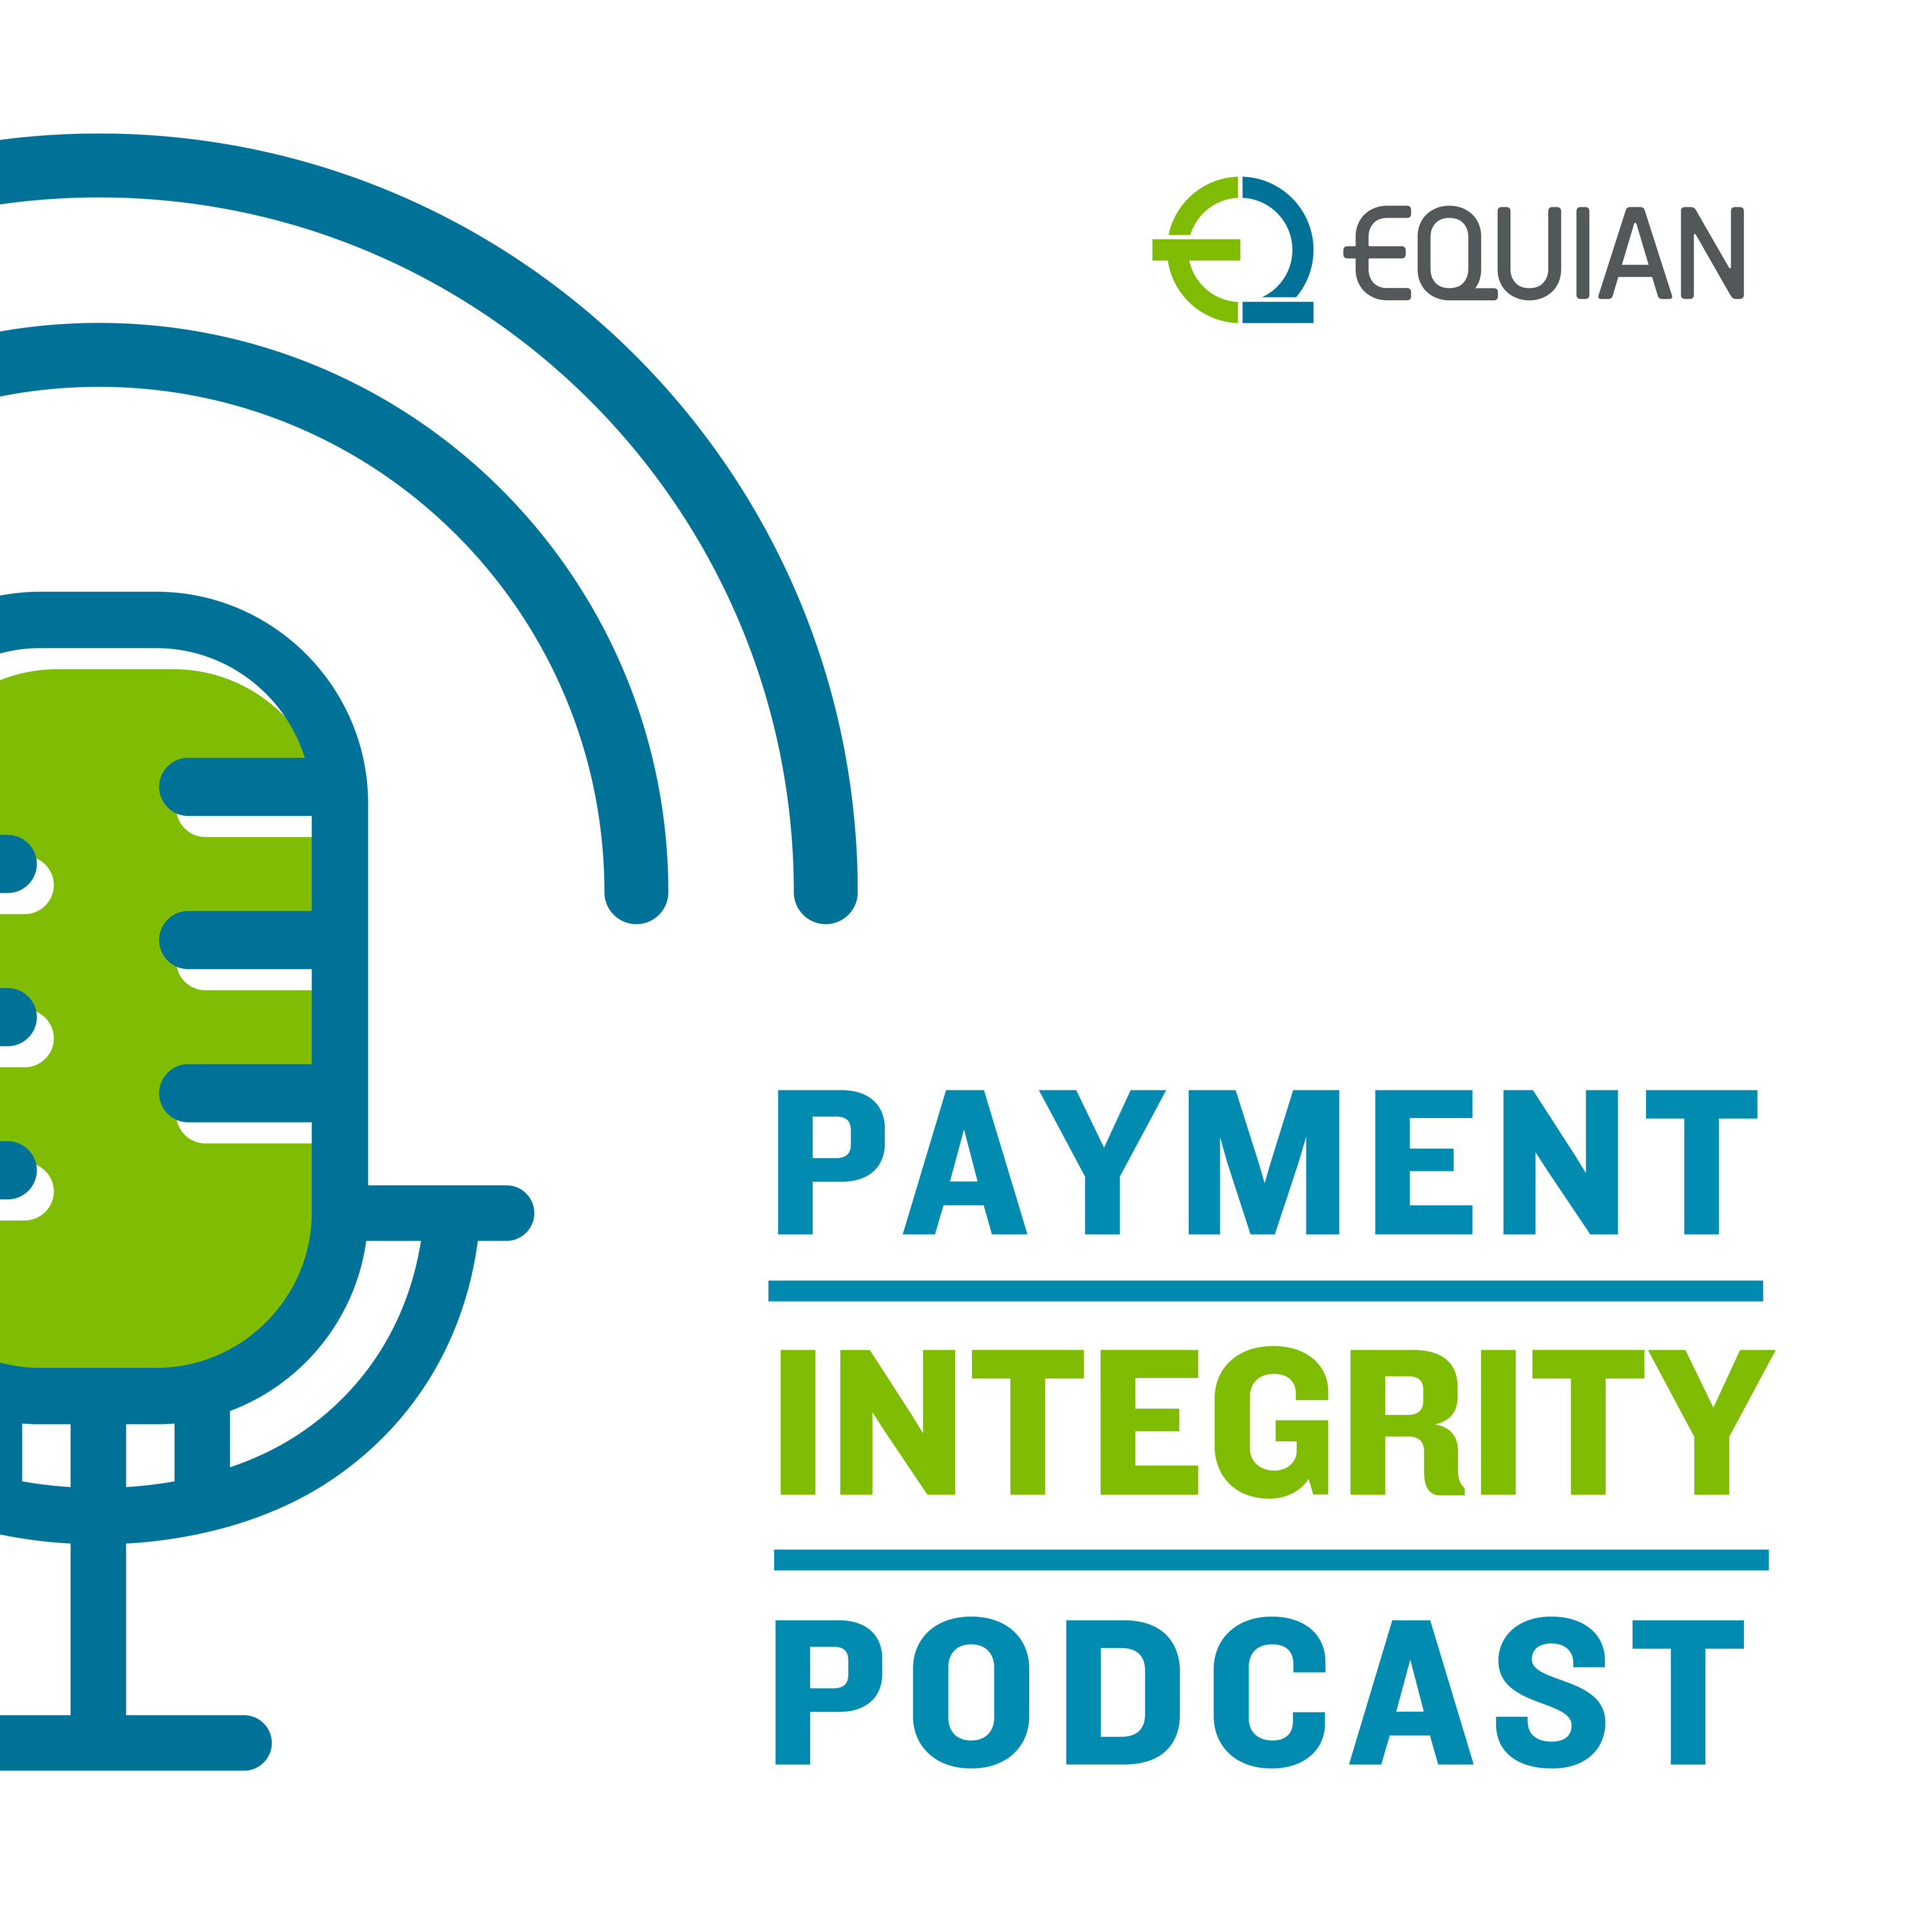 Equian Payment Integrity Podcast show art